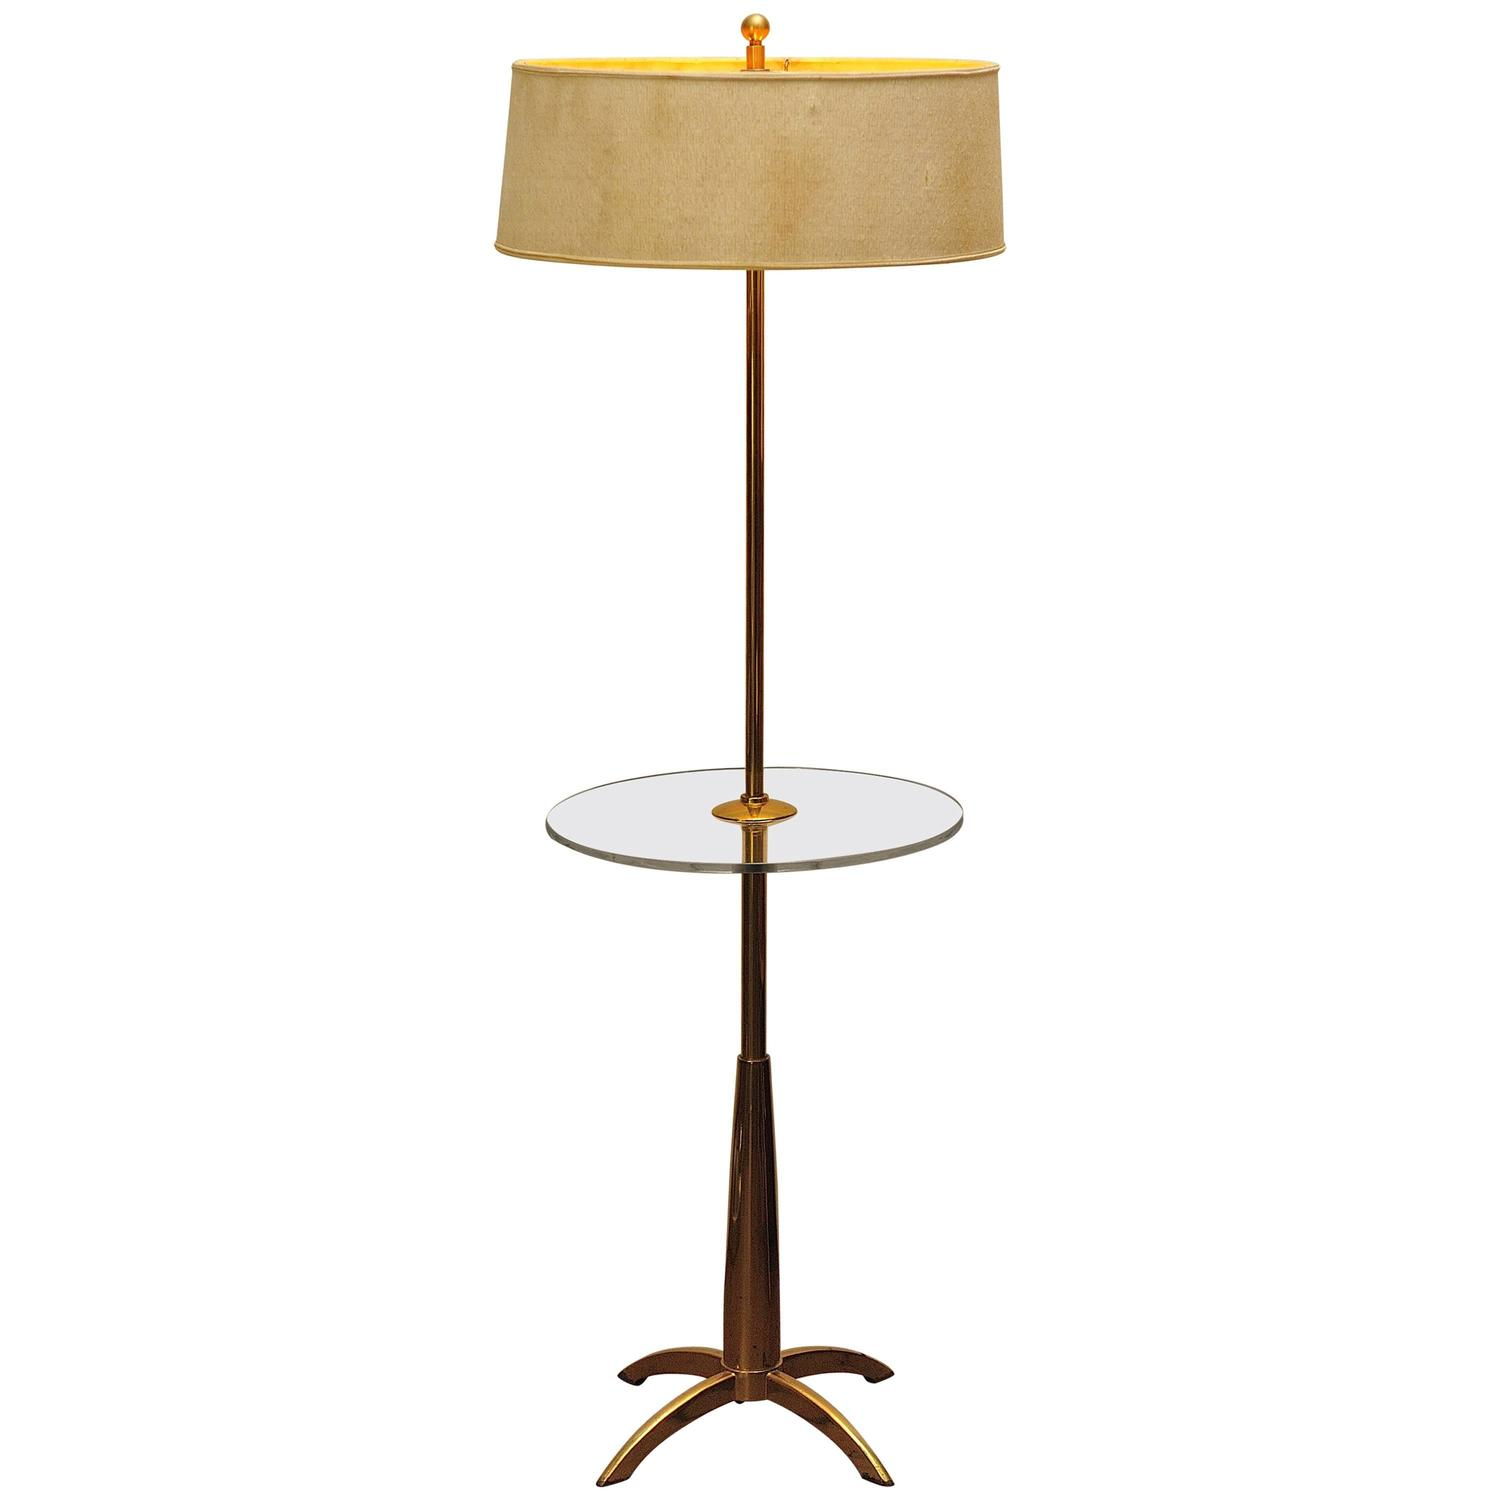 brass and acrylic stiffel mid century modern floor lamp. Black Bedroom Furniture Sets. Home Design Ideas